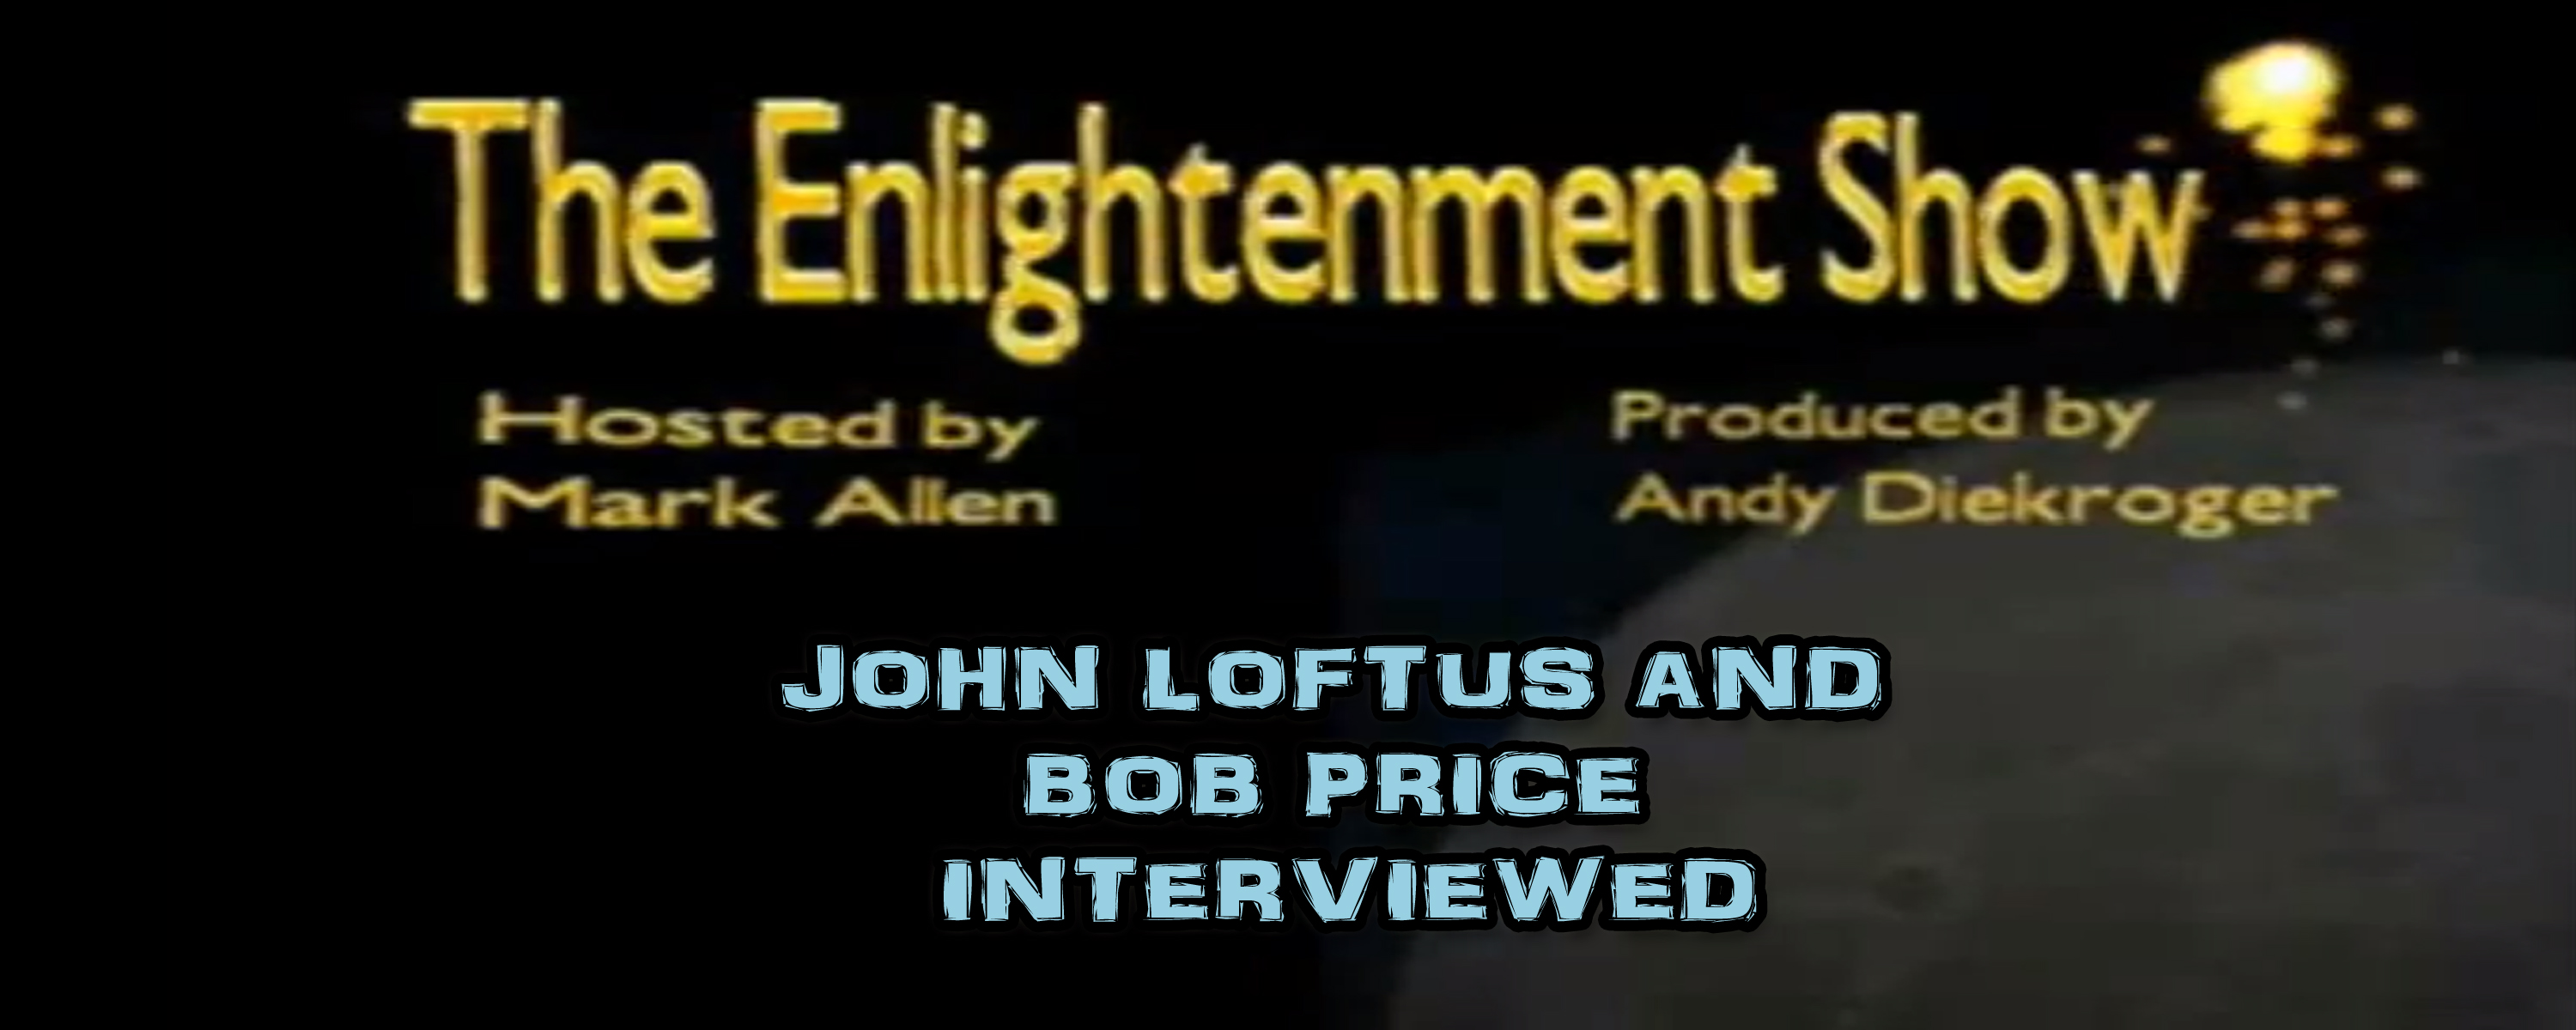 John Loftus and Robert M. Price interviewed on The Enlightenment Show